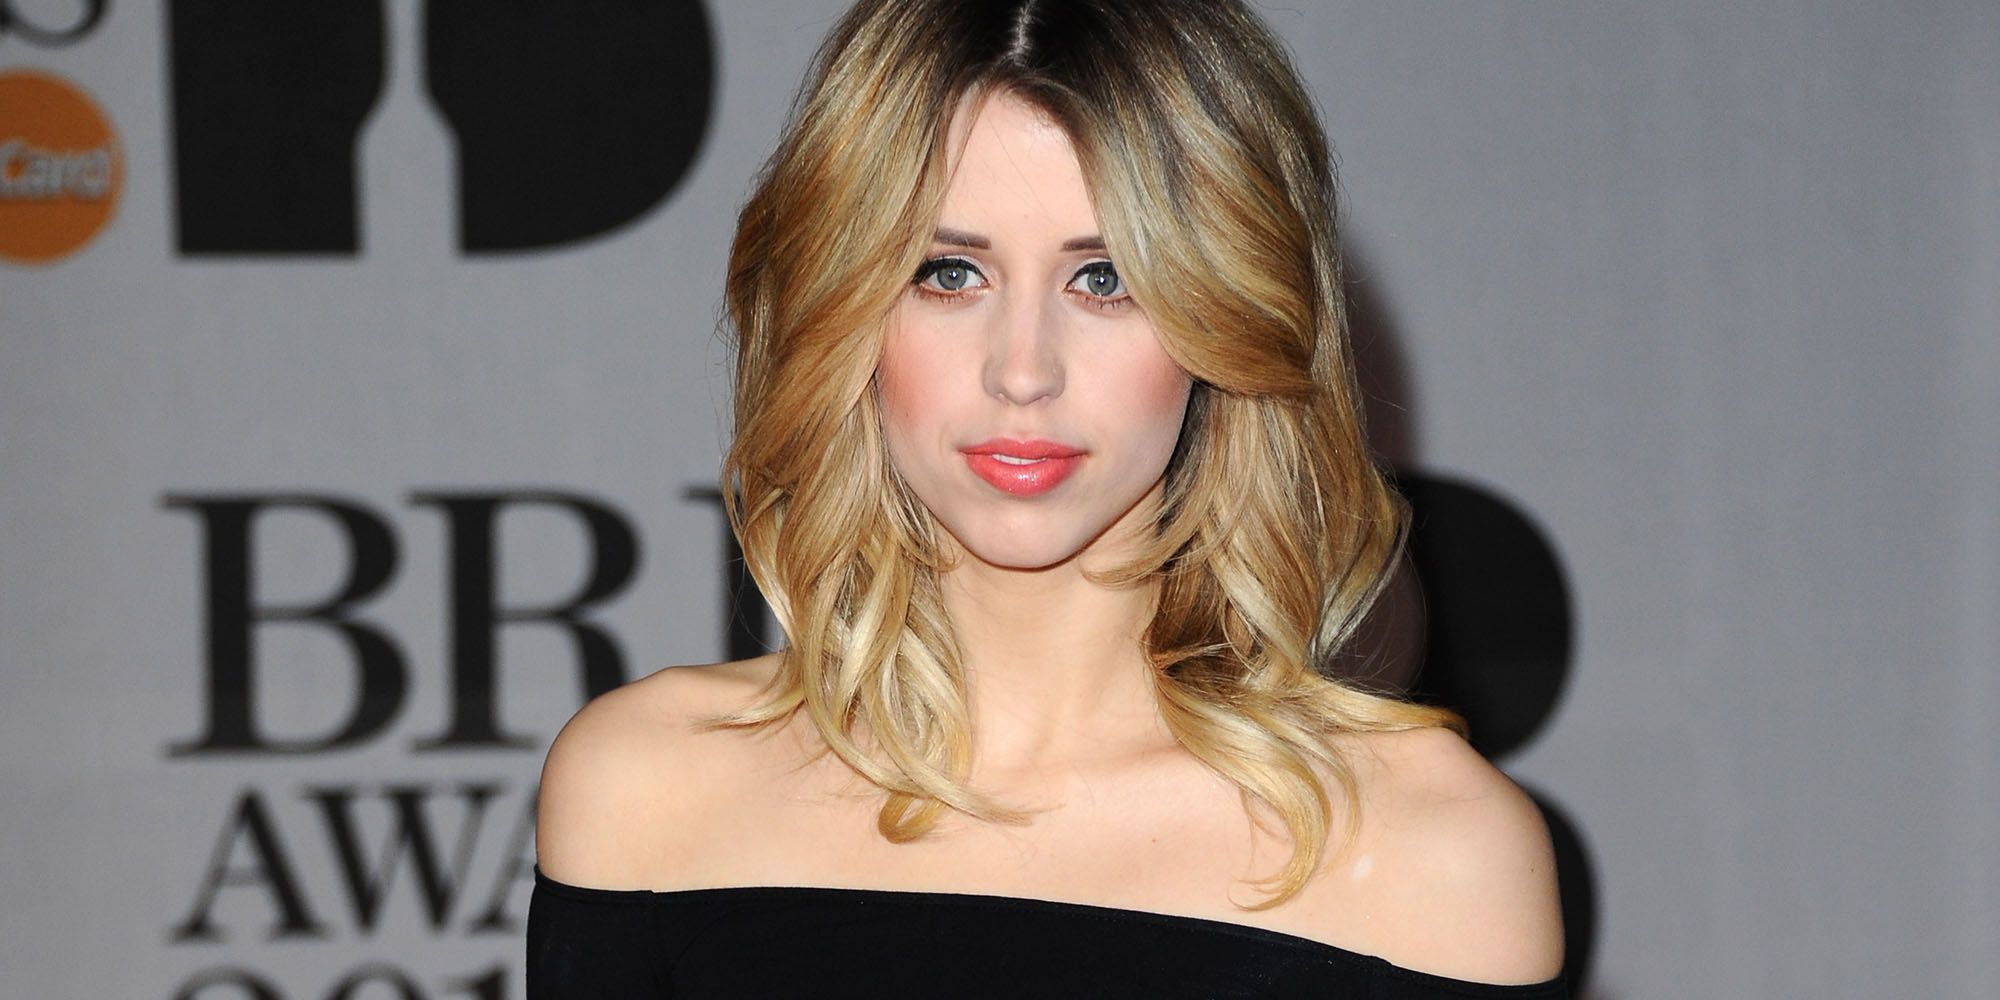 Peaches Geldof nudes (39 fotos), hacked Bikini, YouTube, panties 2016